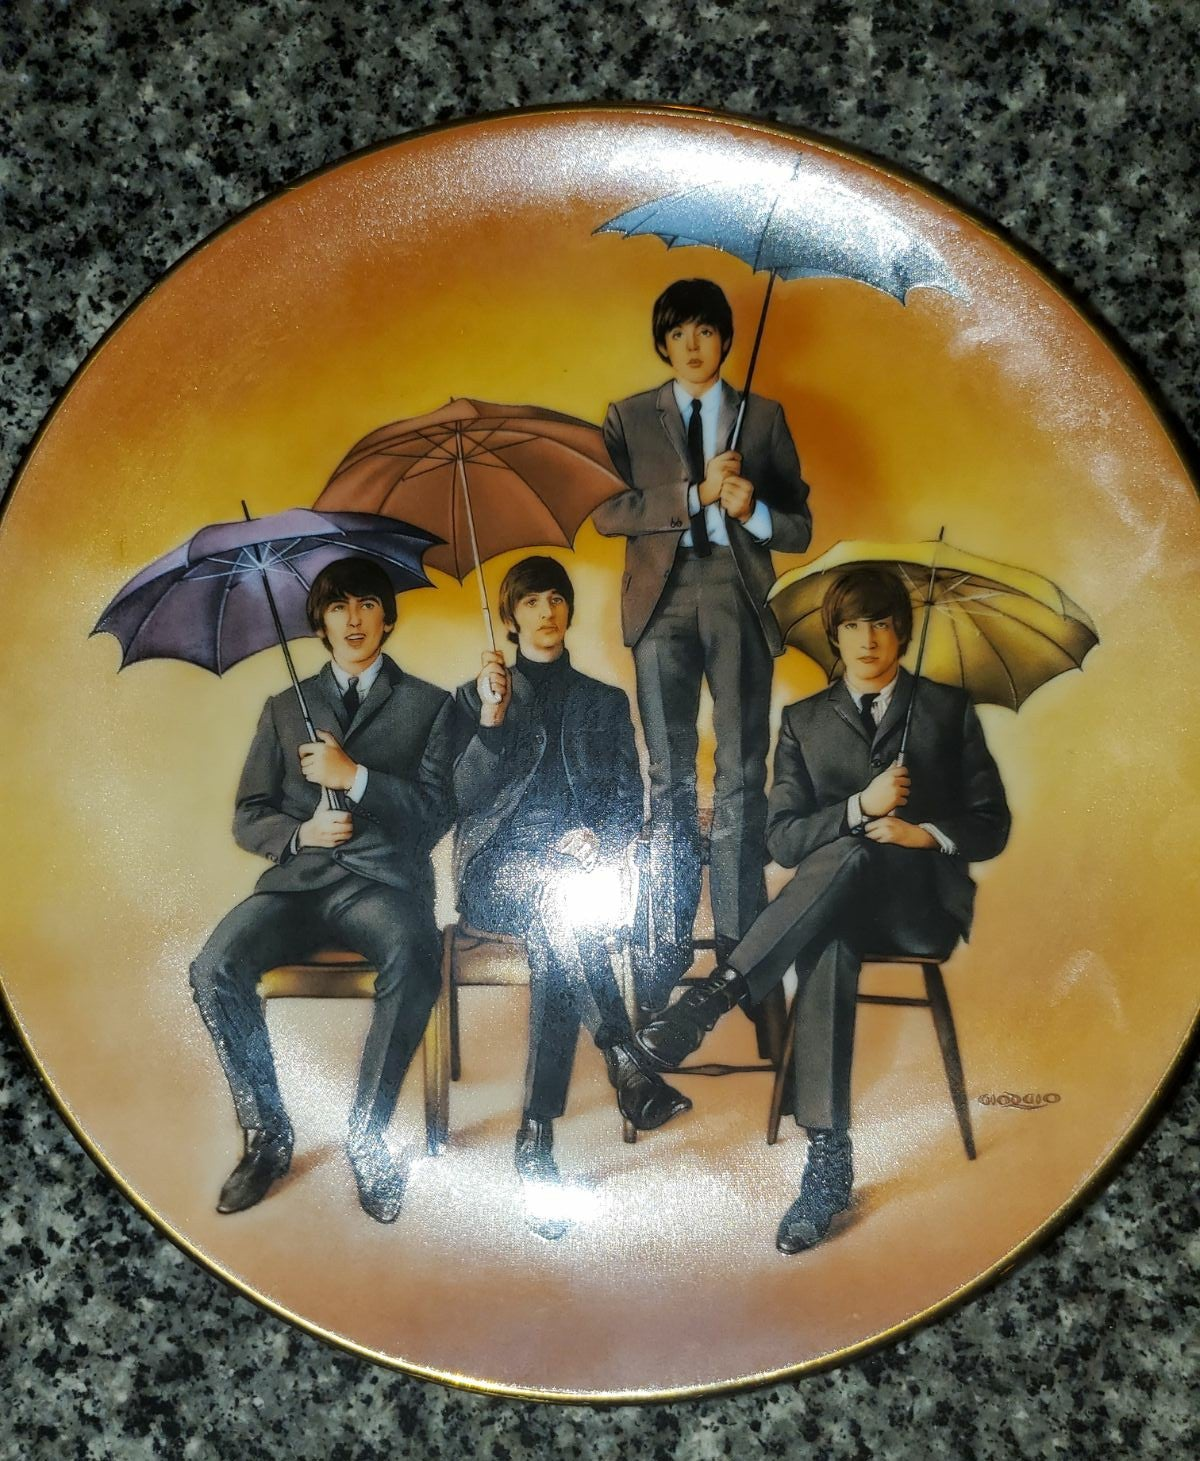 The Beatles 65 Plate